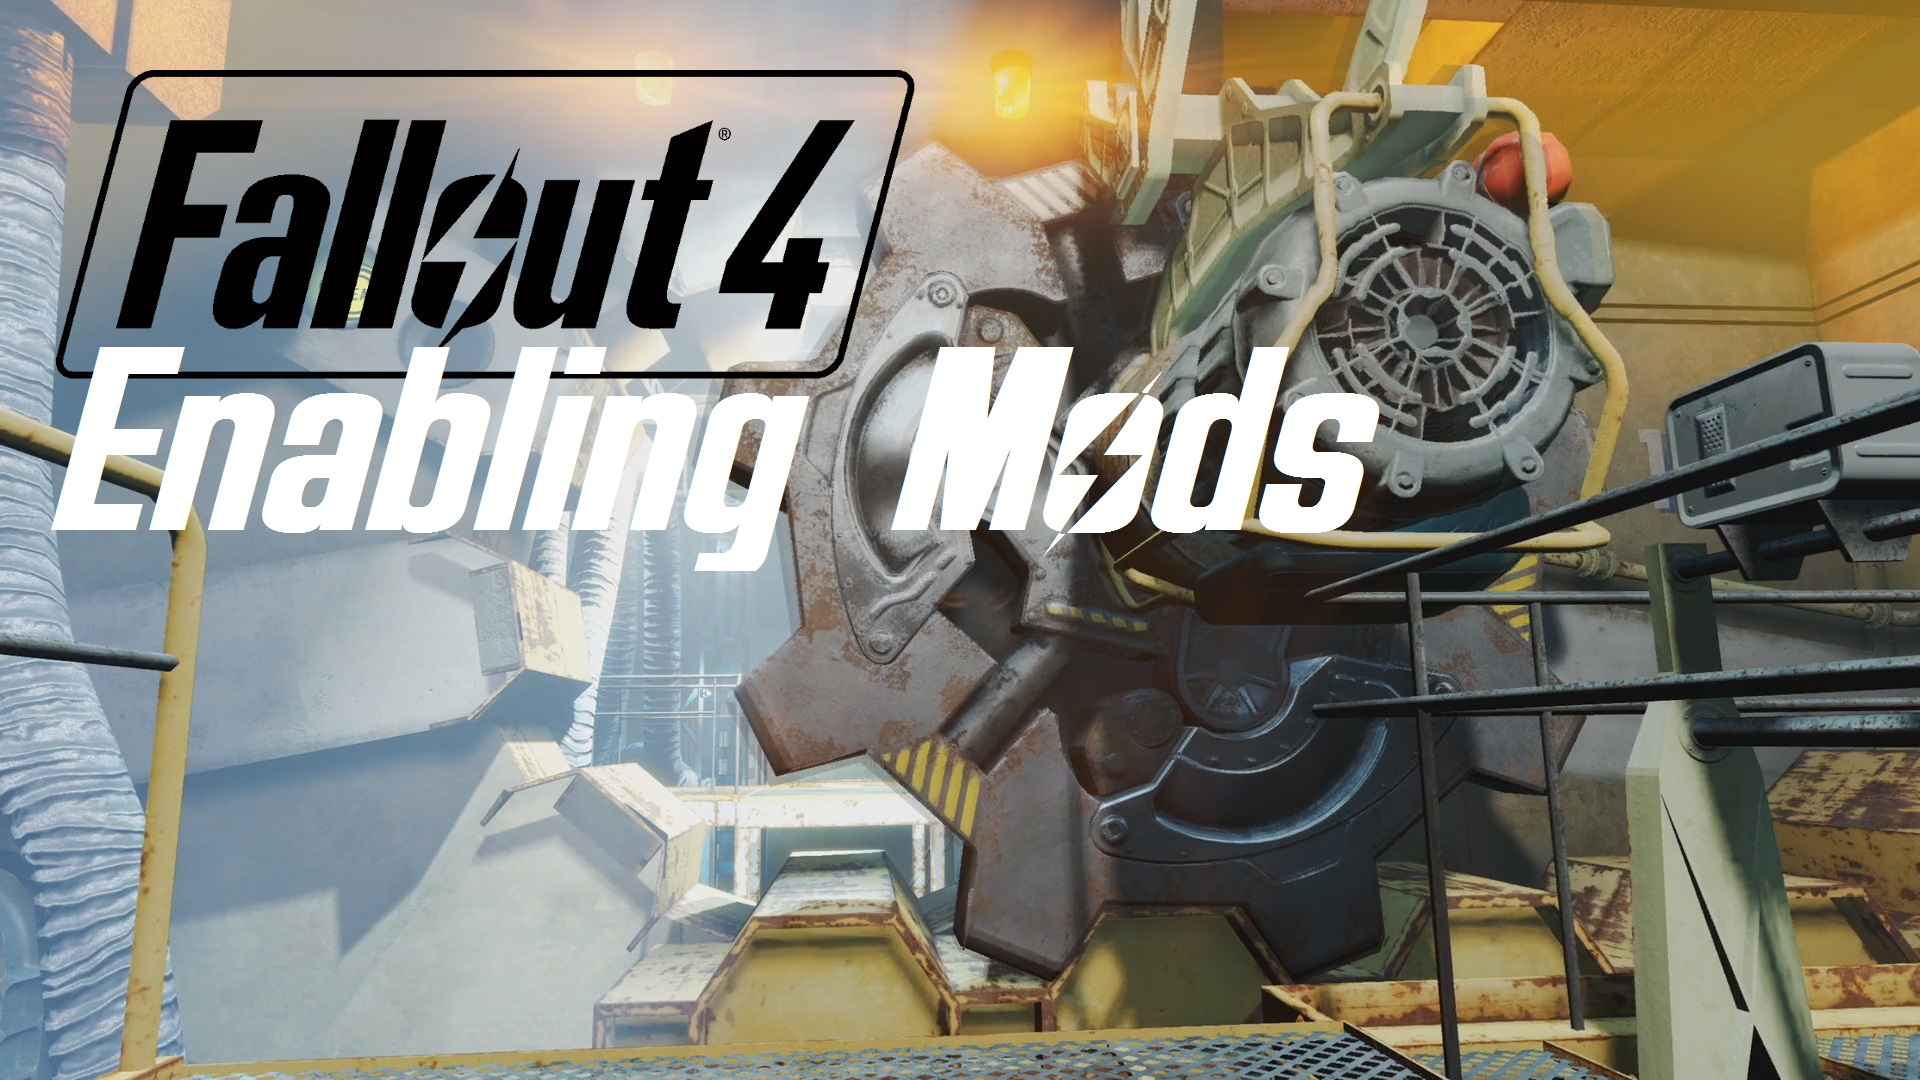 manually install fallout 4 mods